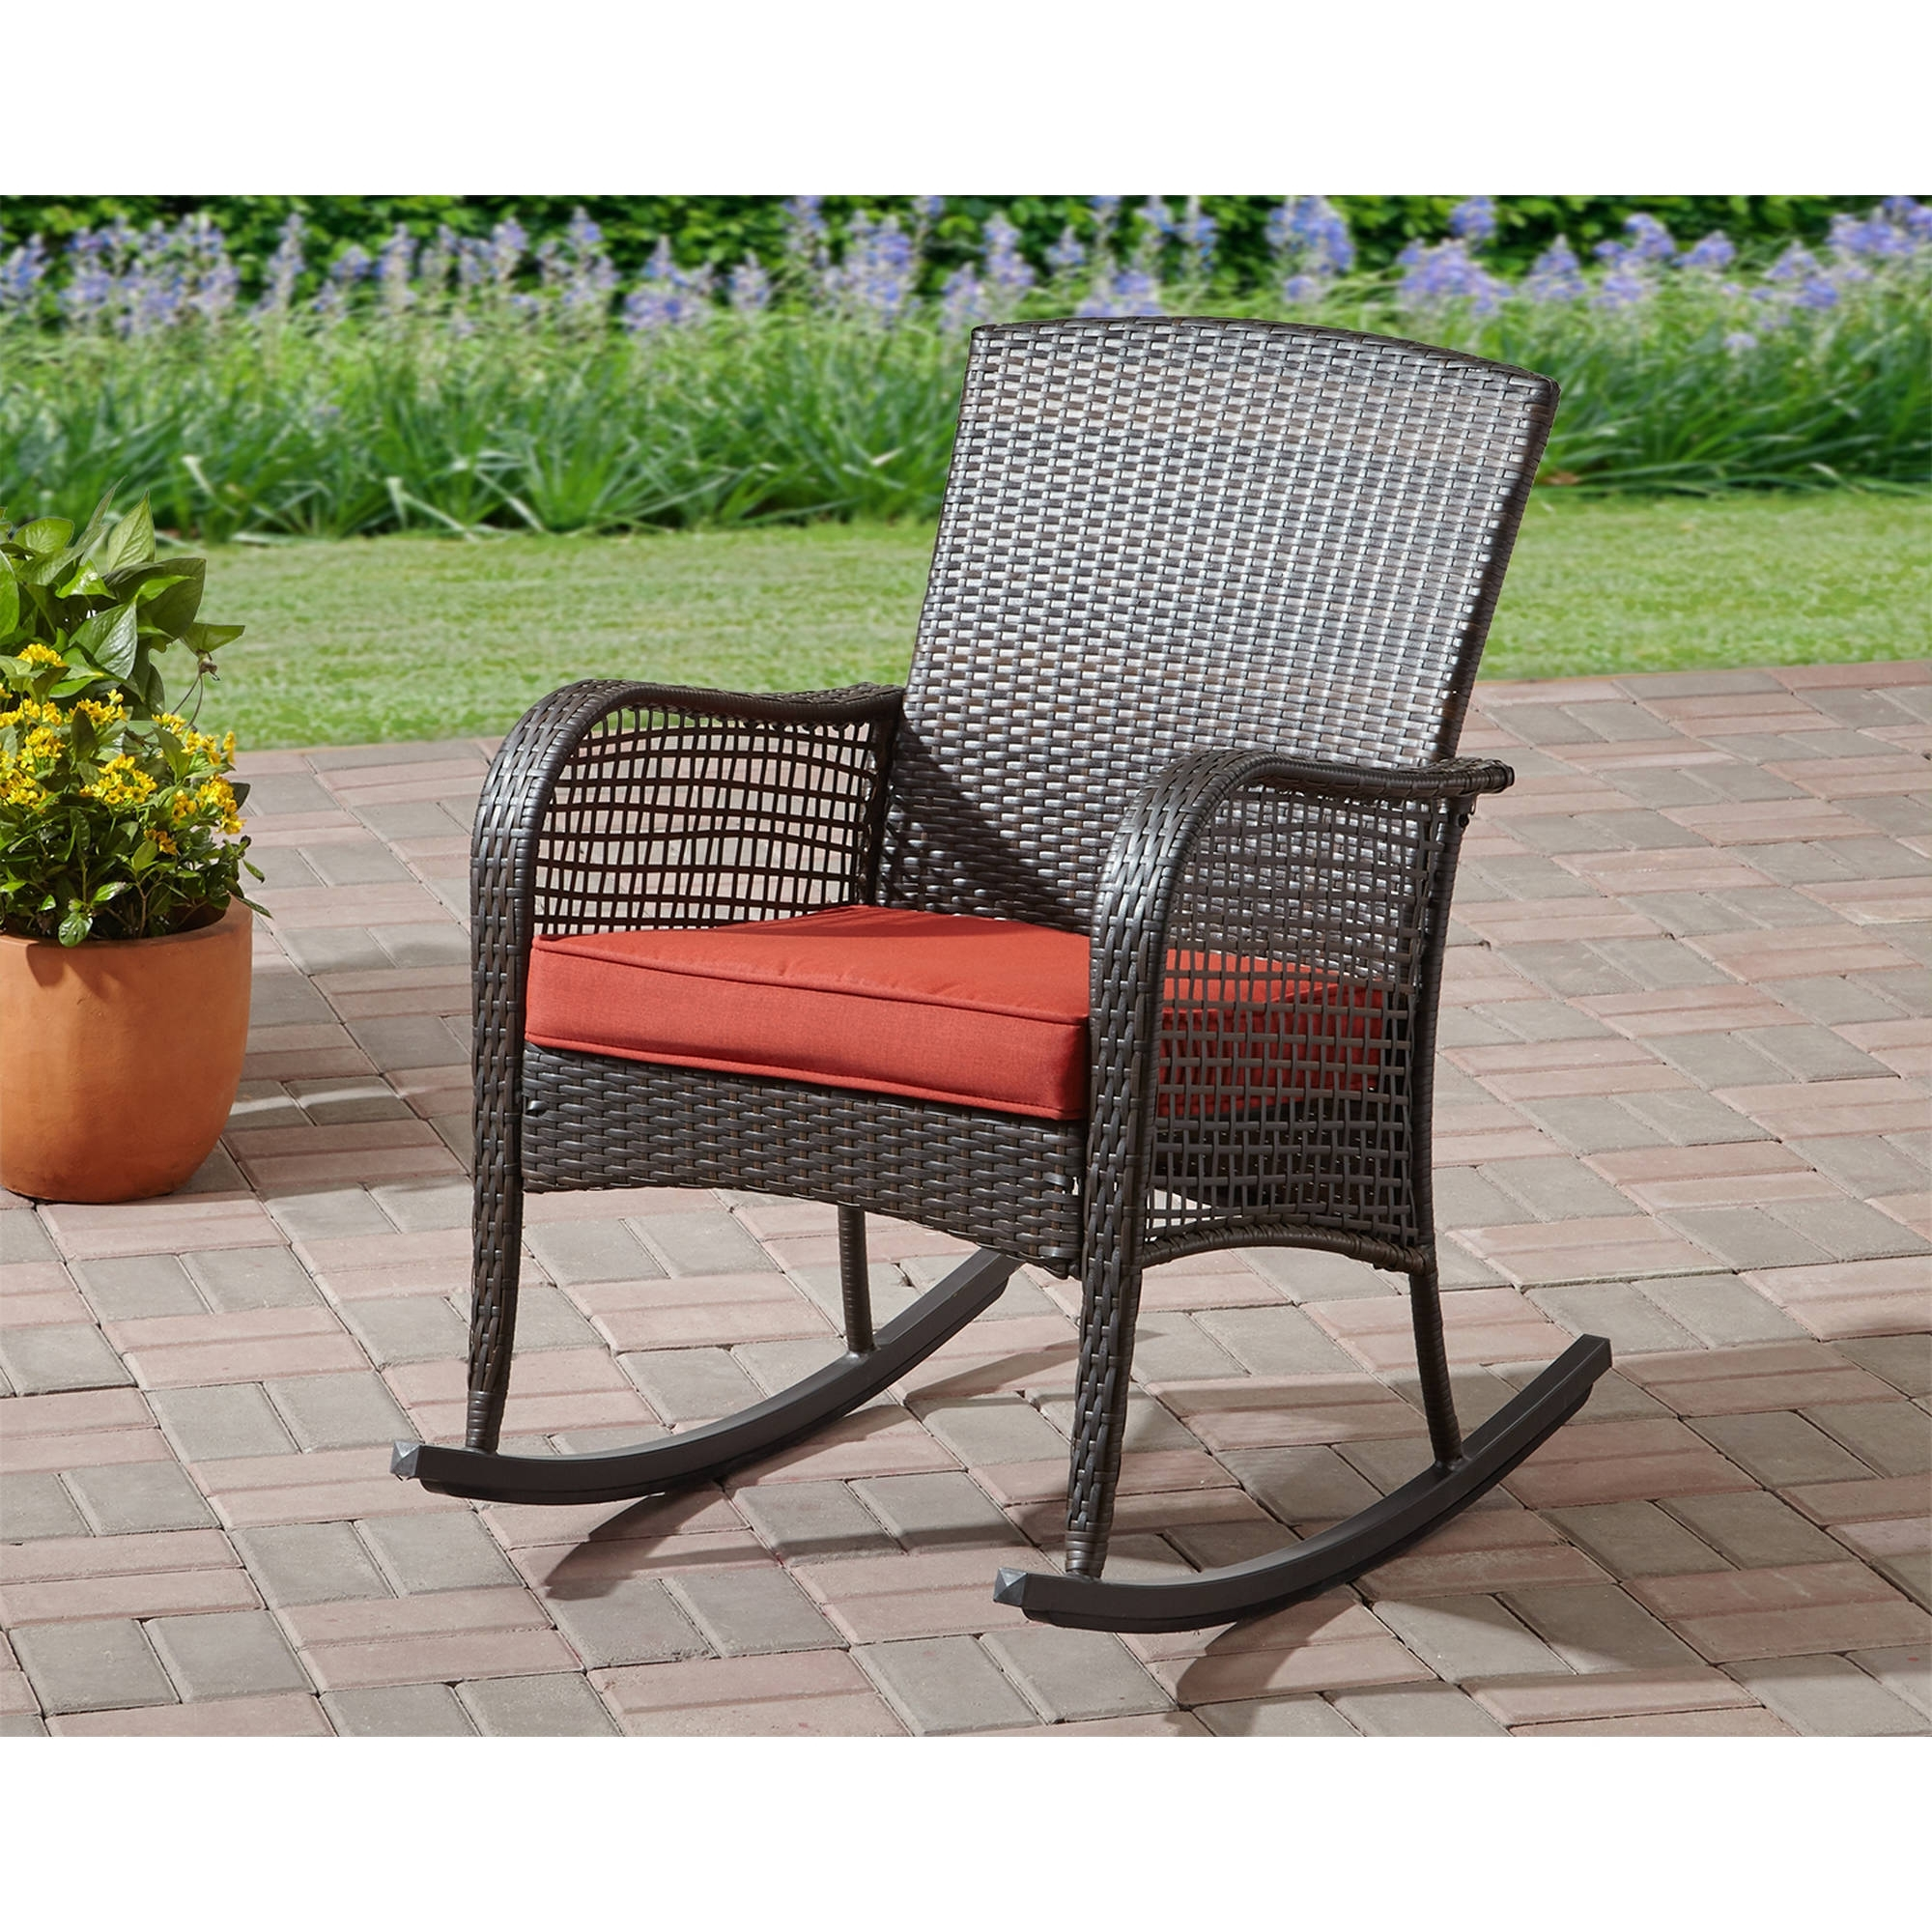 Wicker Rocking Chairs With Cushions For Latest Rocking Chair Cushion Seat Wicker Steel Frame Outdoor Patio Deck (View 13 of 15)